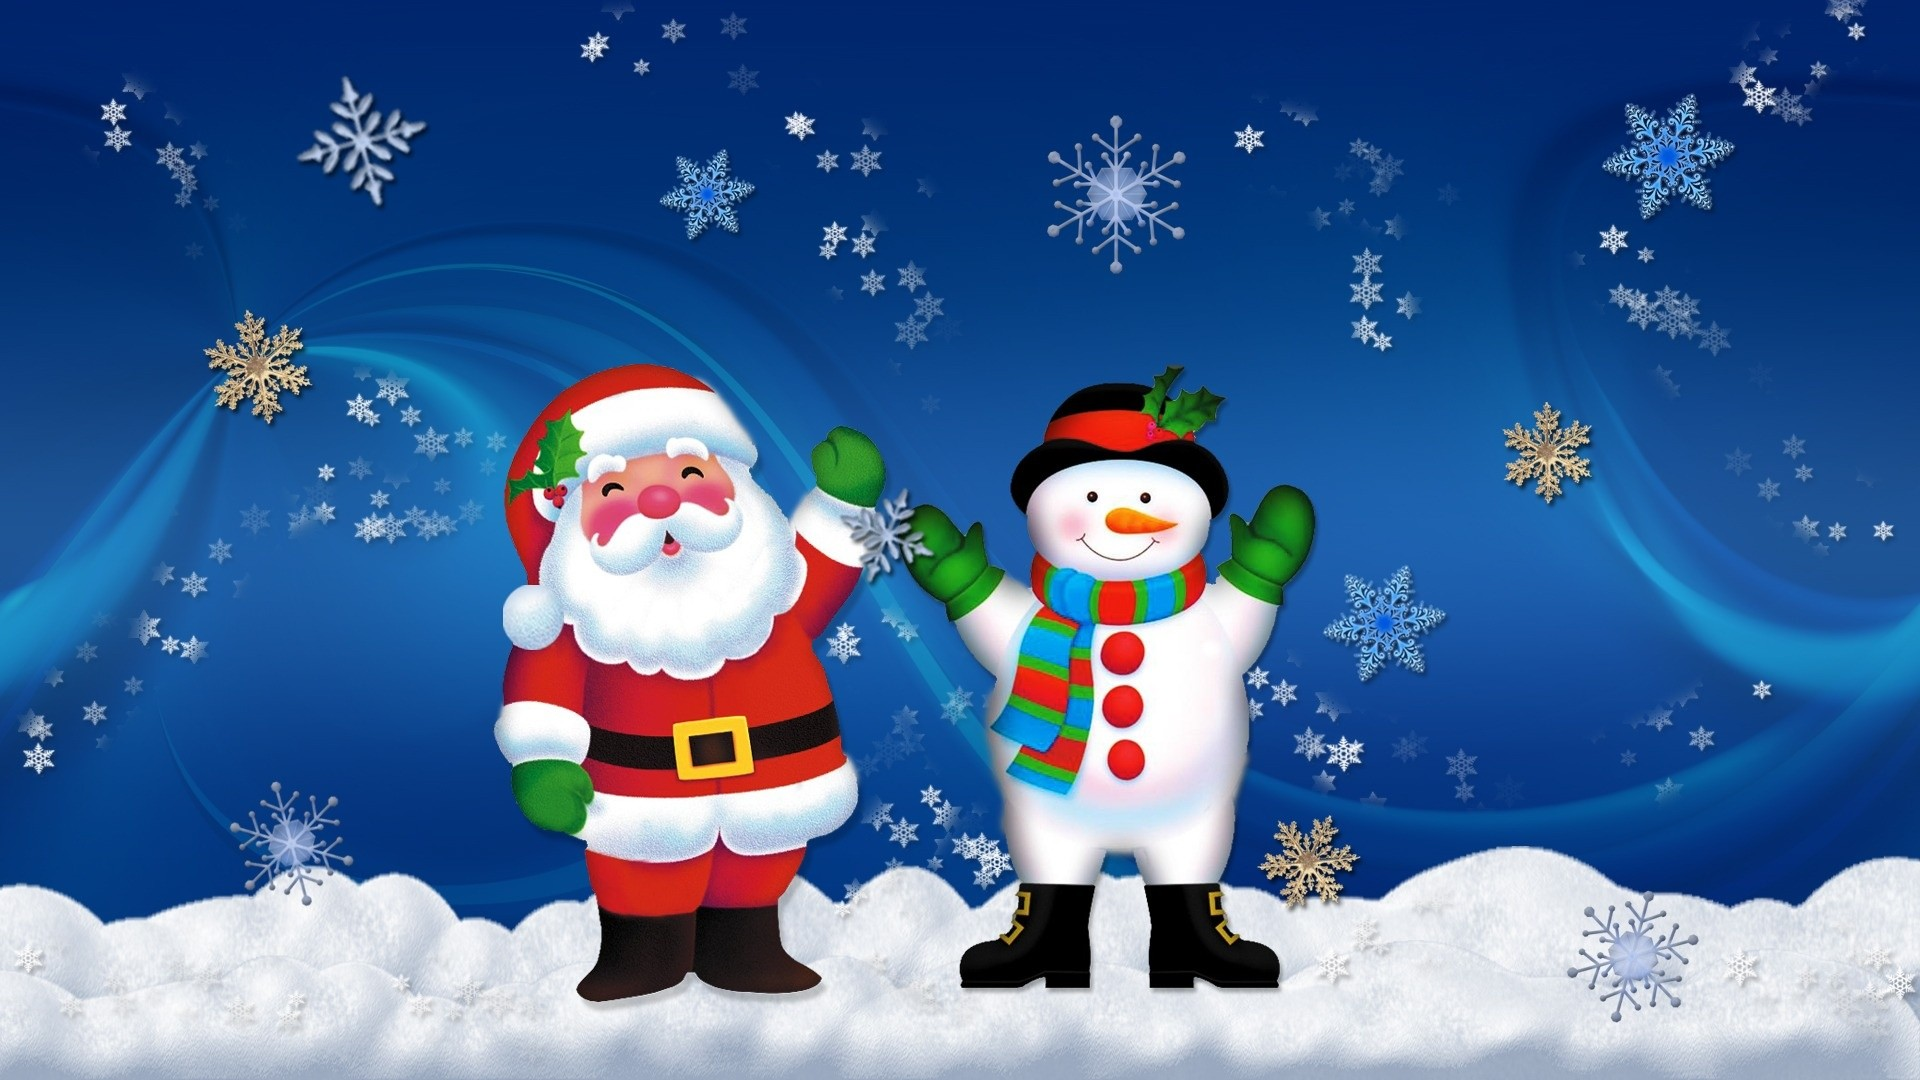 Christmas Wallpapers And Screensavers 70 Images